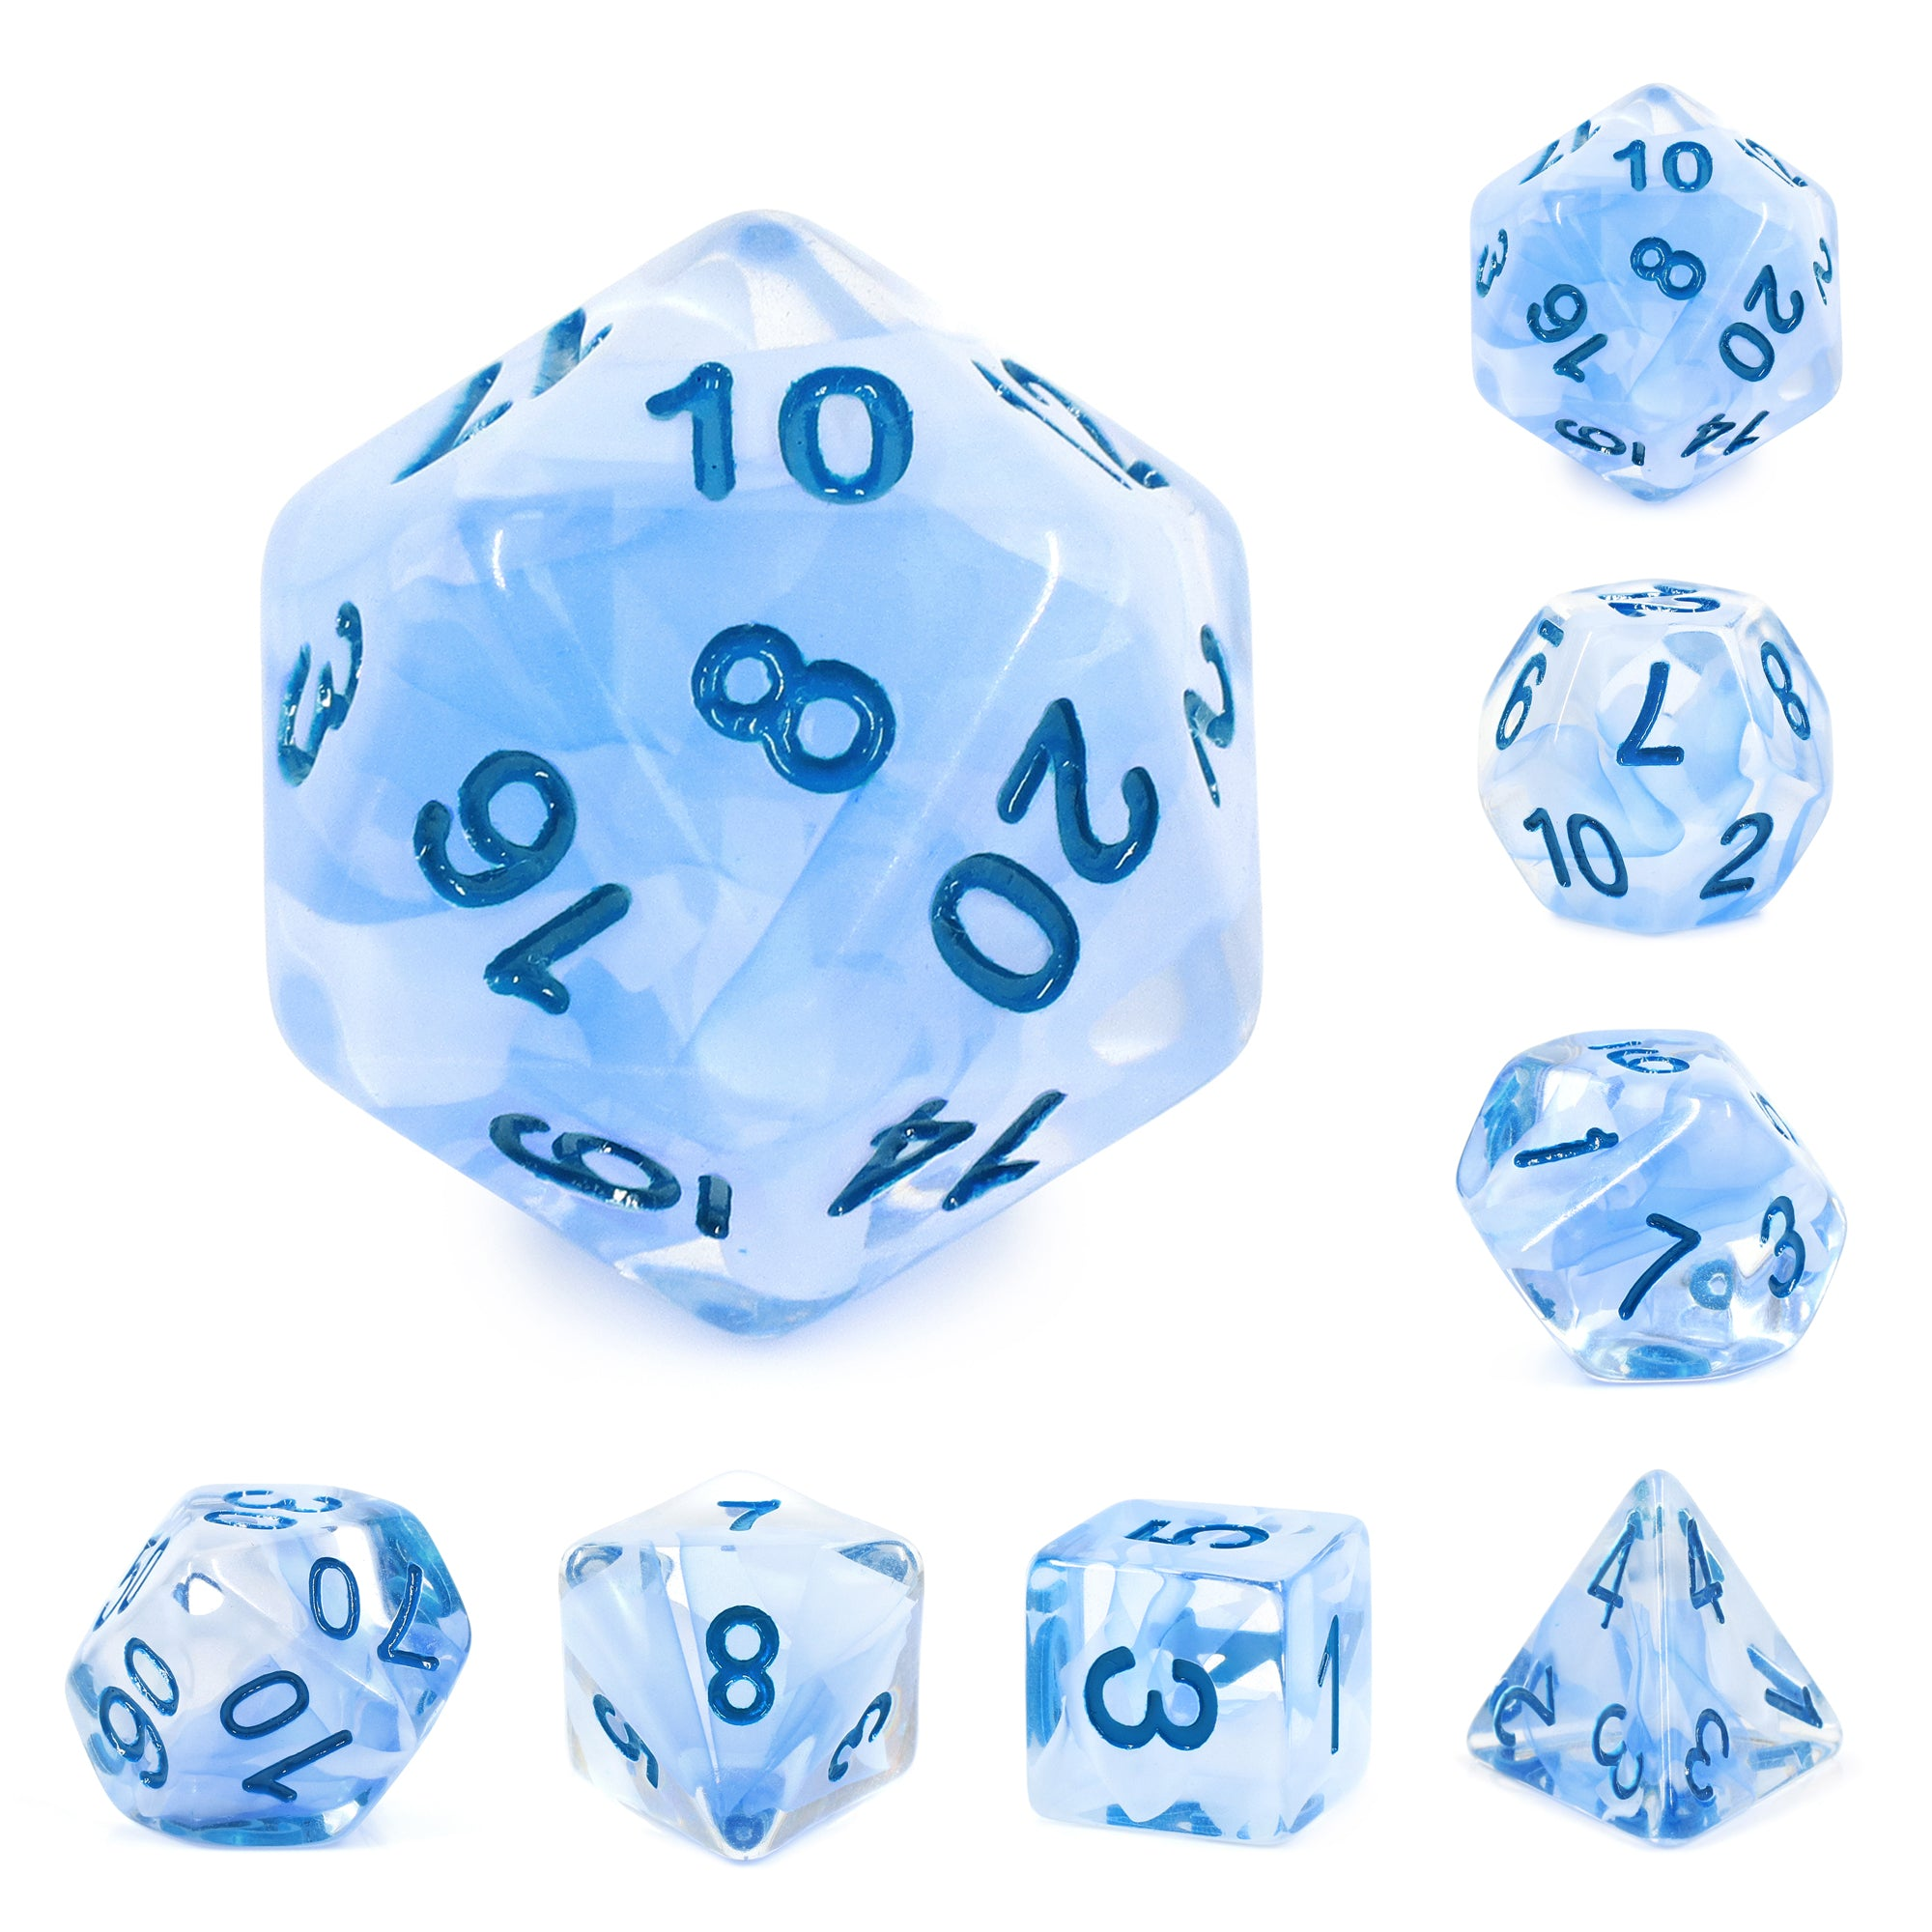 Sea Mist Dice Set